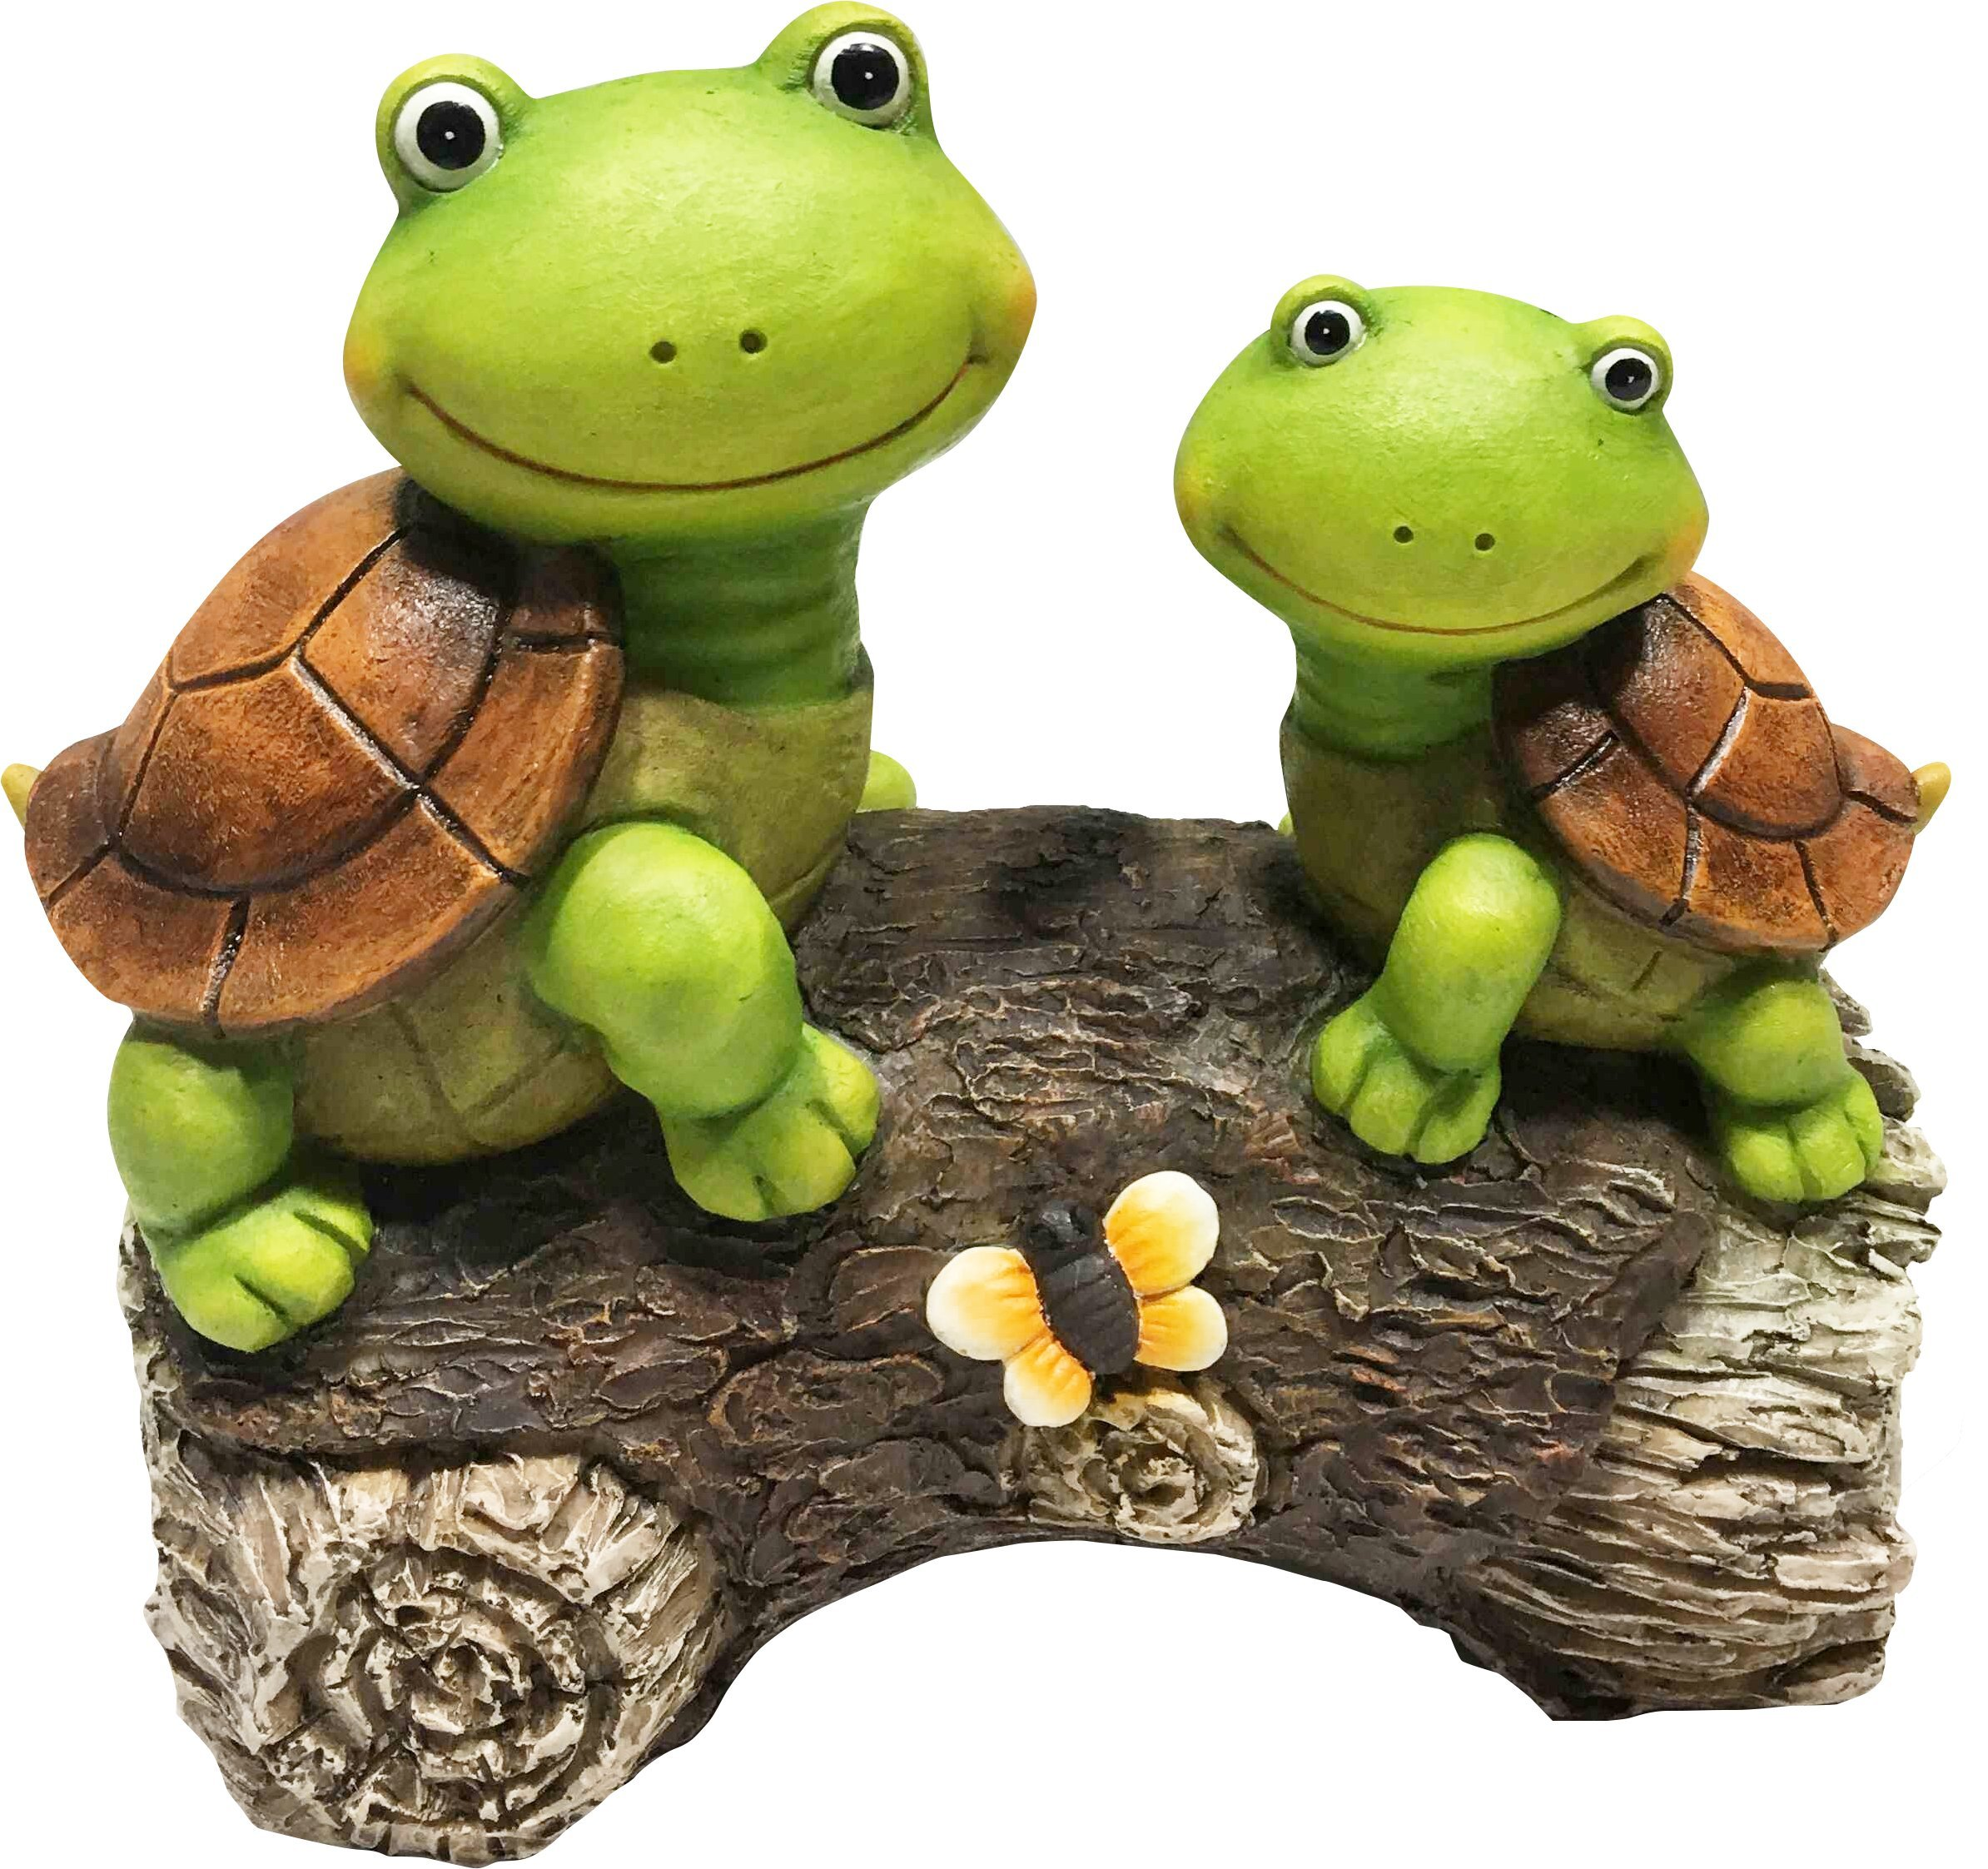 LA JOLIE MUSE Garden Statue Outdoor Figurines Turtles on a Log for Patio Lawn Yard Gardening Decor, 9Inch (Turtle) by LA JOLIE MUSE